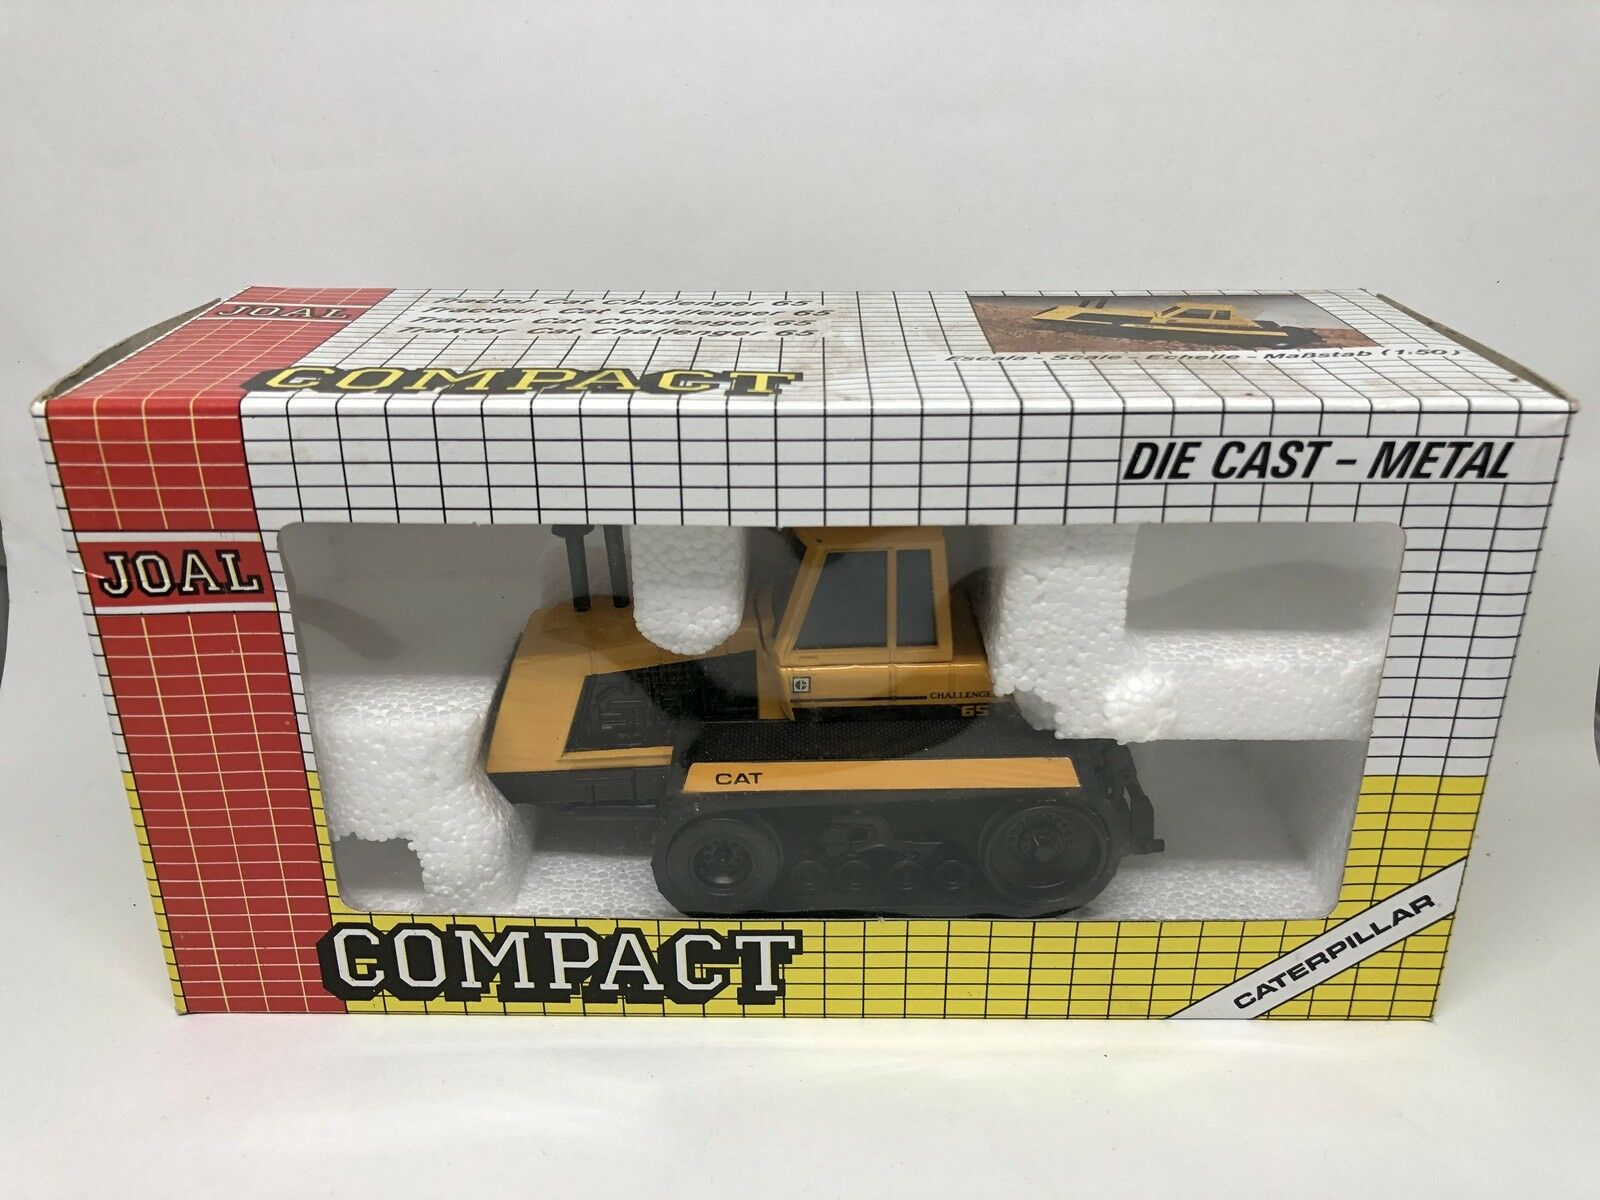 JOAL 233 Caterpillar Challenger 65 Tractor 1:50 1:50 1:50 Scale New In Box Made In Spain b597f5